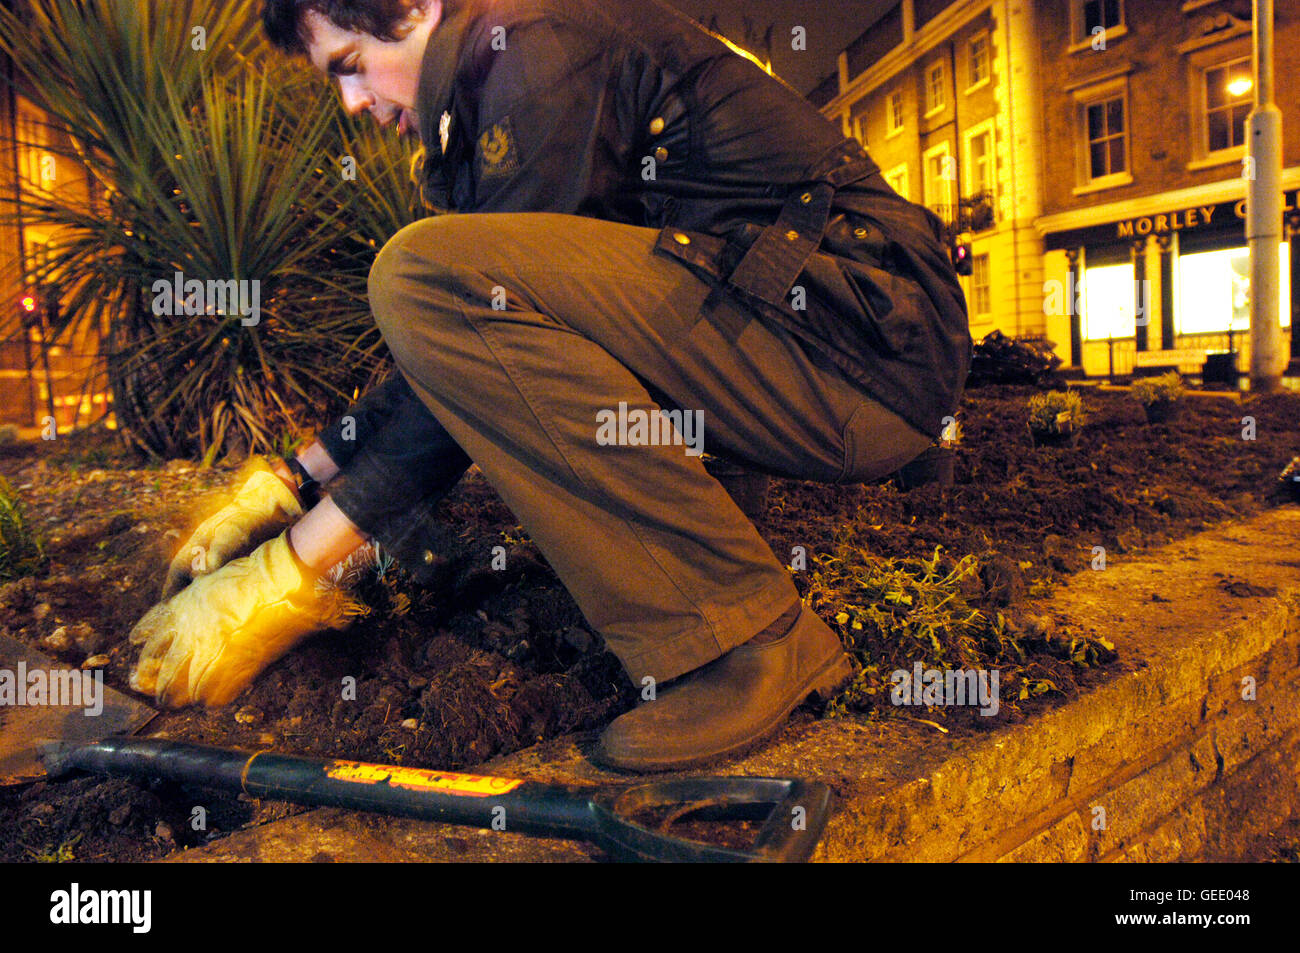 Richard Reynolds, founder of The Guerrilla Gardening organisation in ...